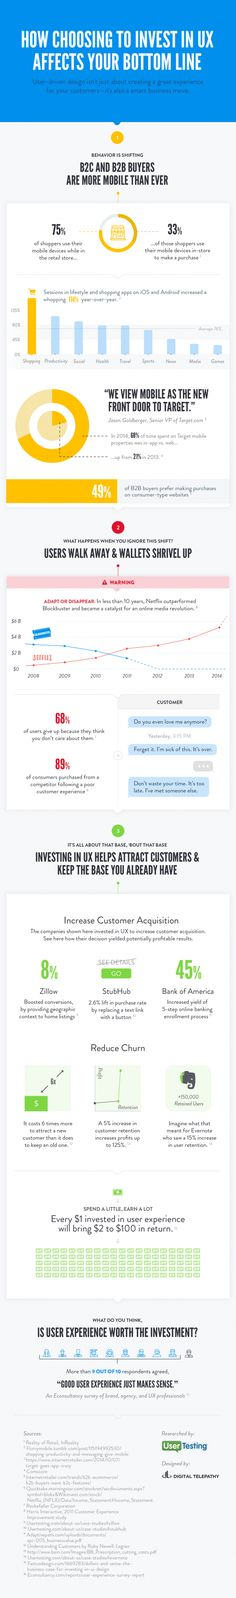 Check out this infographic from the folks at UserTesting, powered by stats from comScore, Rockefeller Corporation, Bain & Company, Fastcodesign, and more.